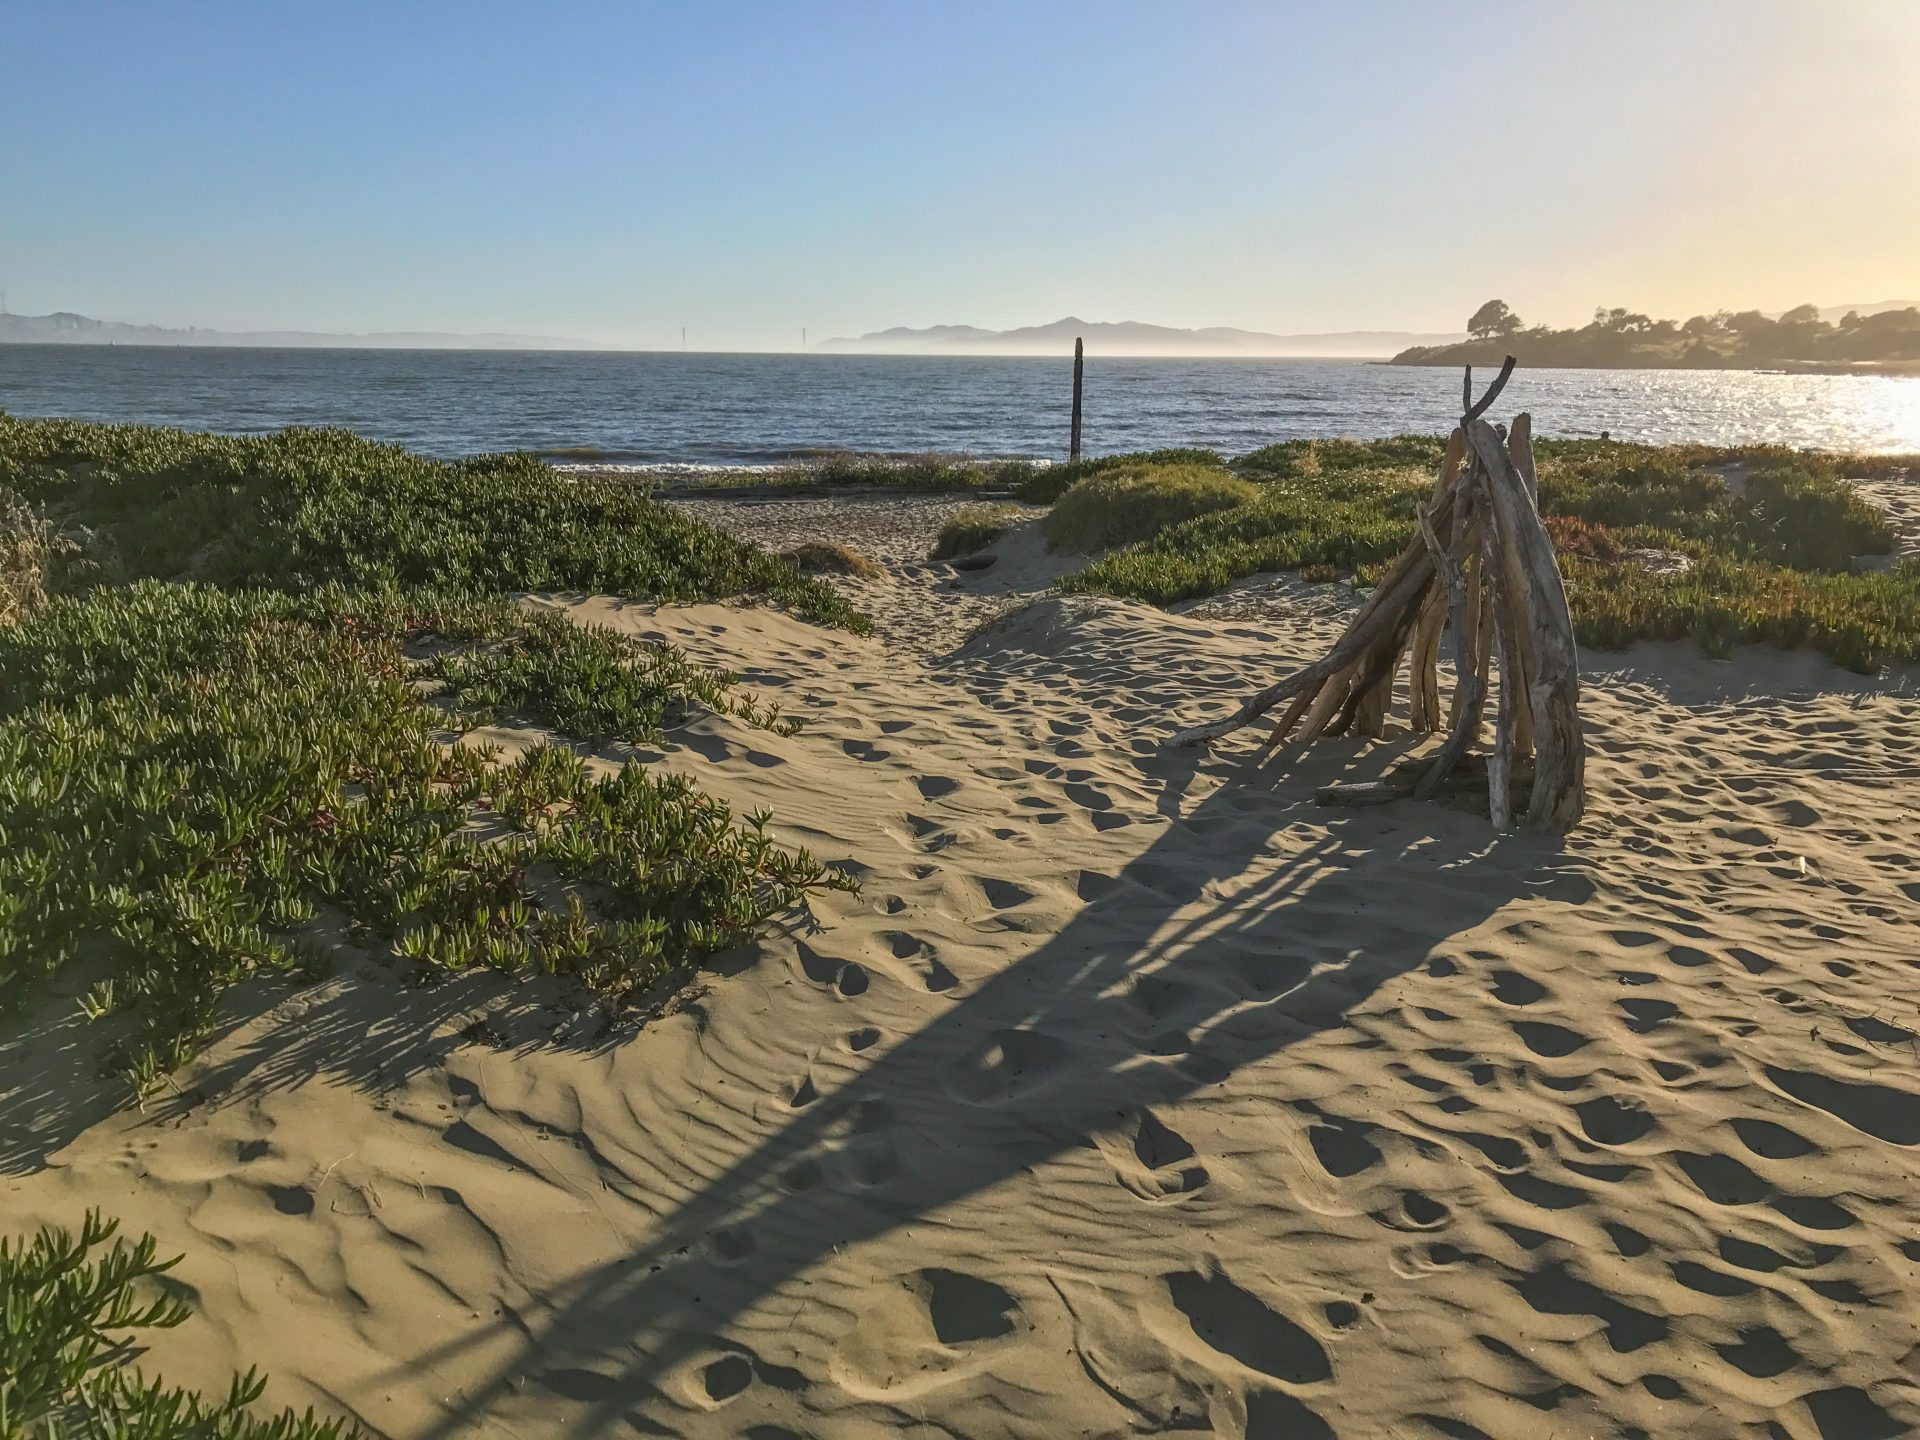 evening light on a driftwood sculpture casts long shadows over sandy beach and iceplant